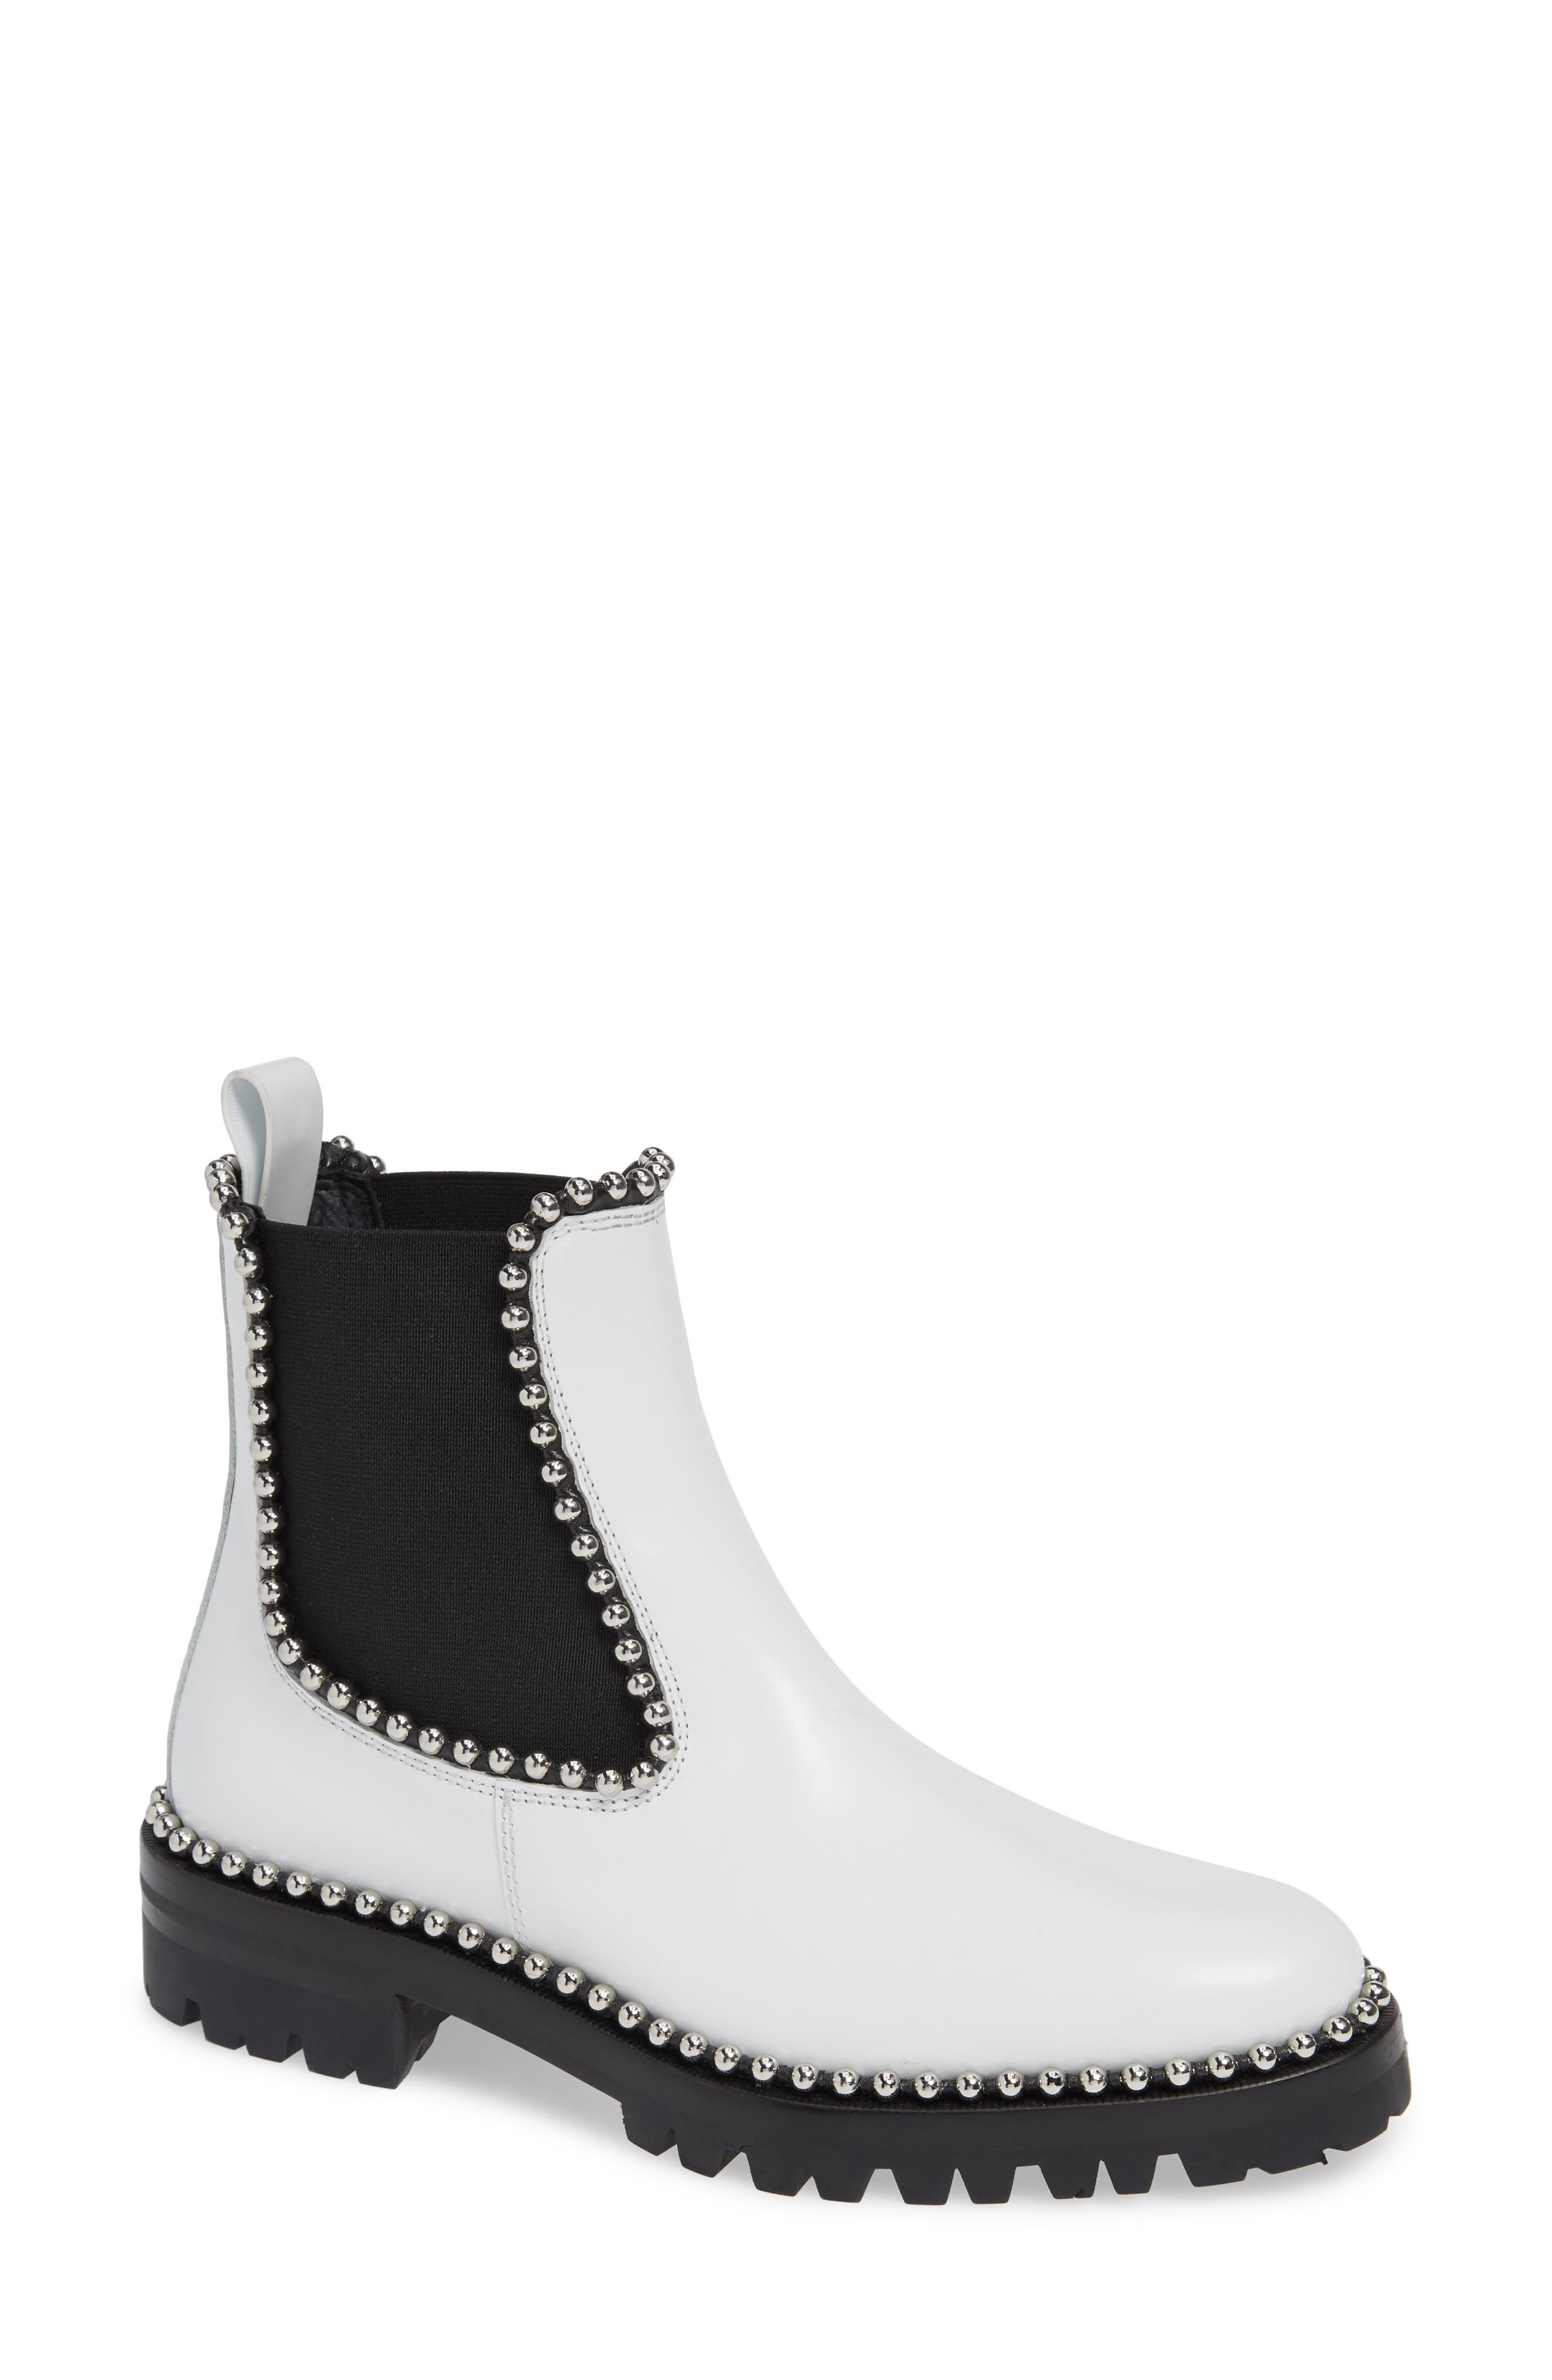 Spencer Chelsea Boot,                             Main thumbnail 1, color,                             WHITE LEATHER